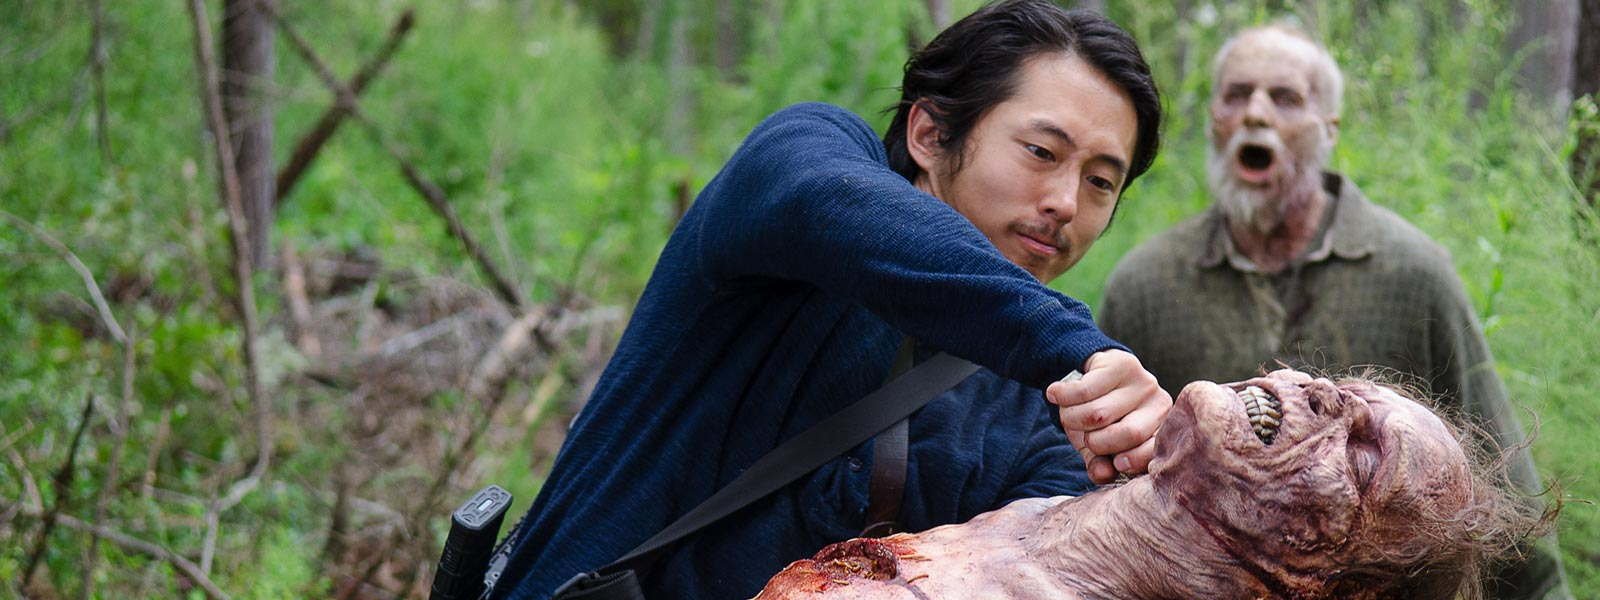 the-walking-dead-episode-612-glenn-yeun-post-800×600